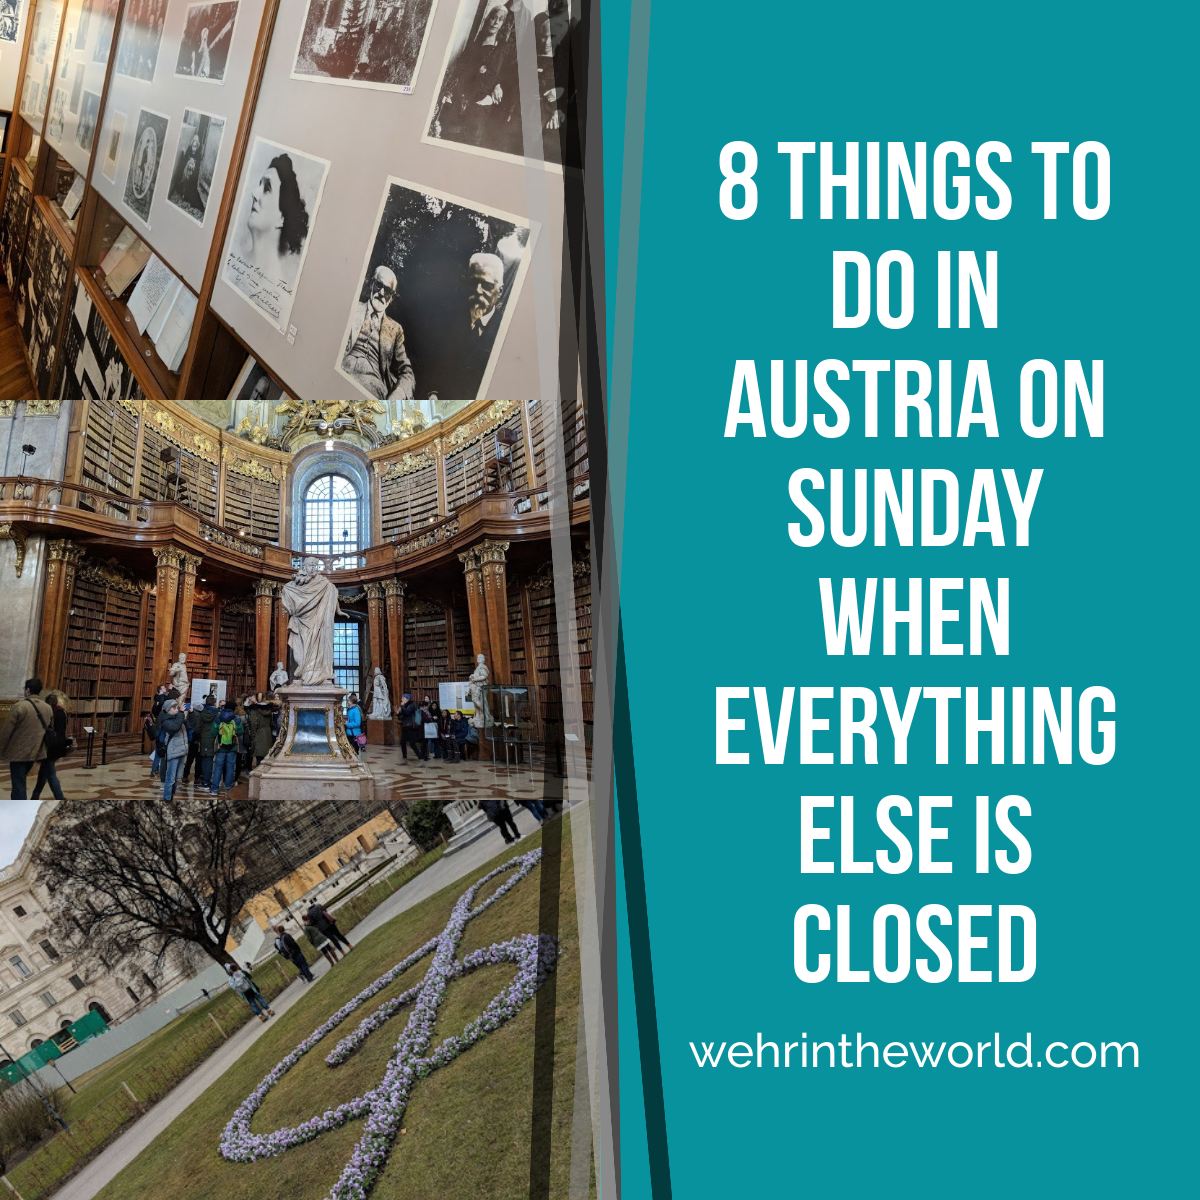 8 Things to Do In Vienna On Sunday When Everything Else Is Closed